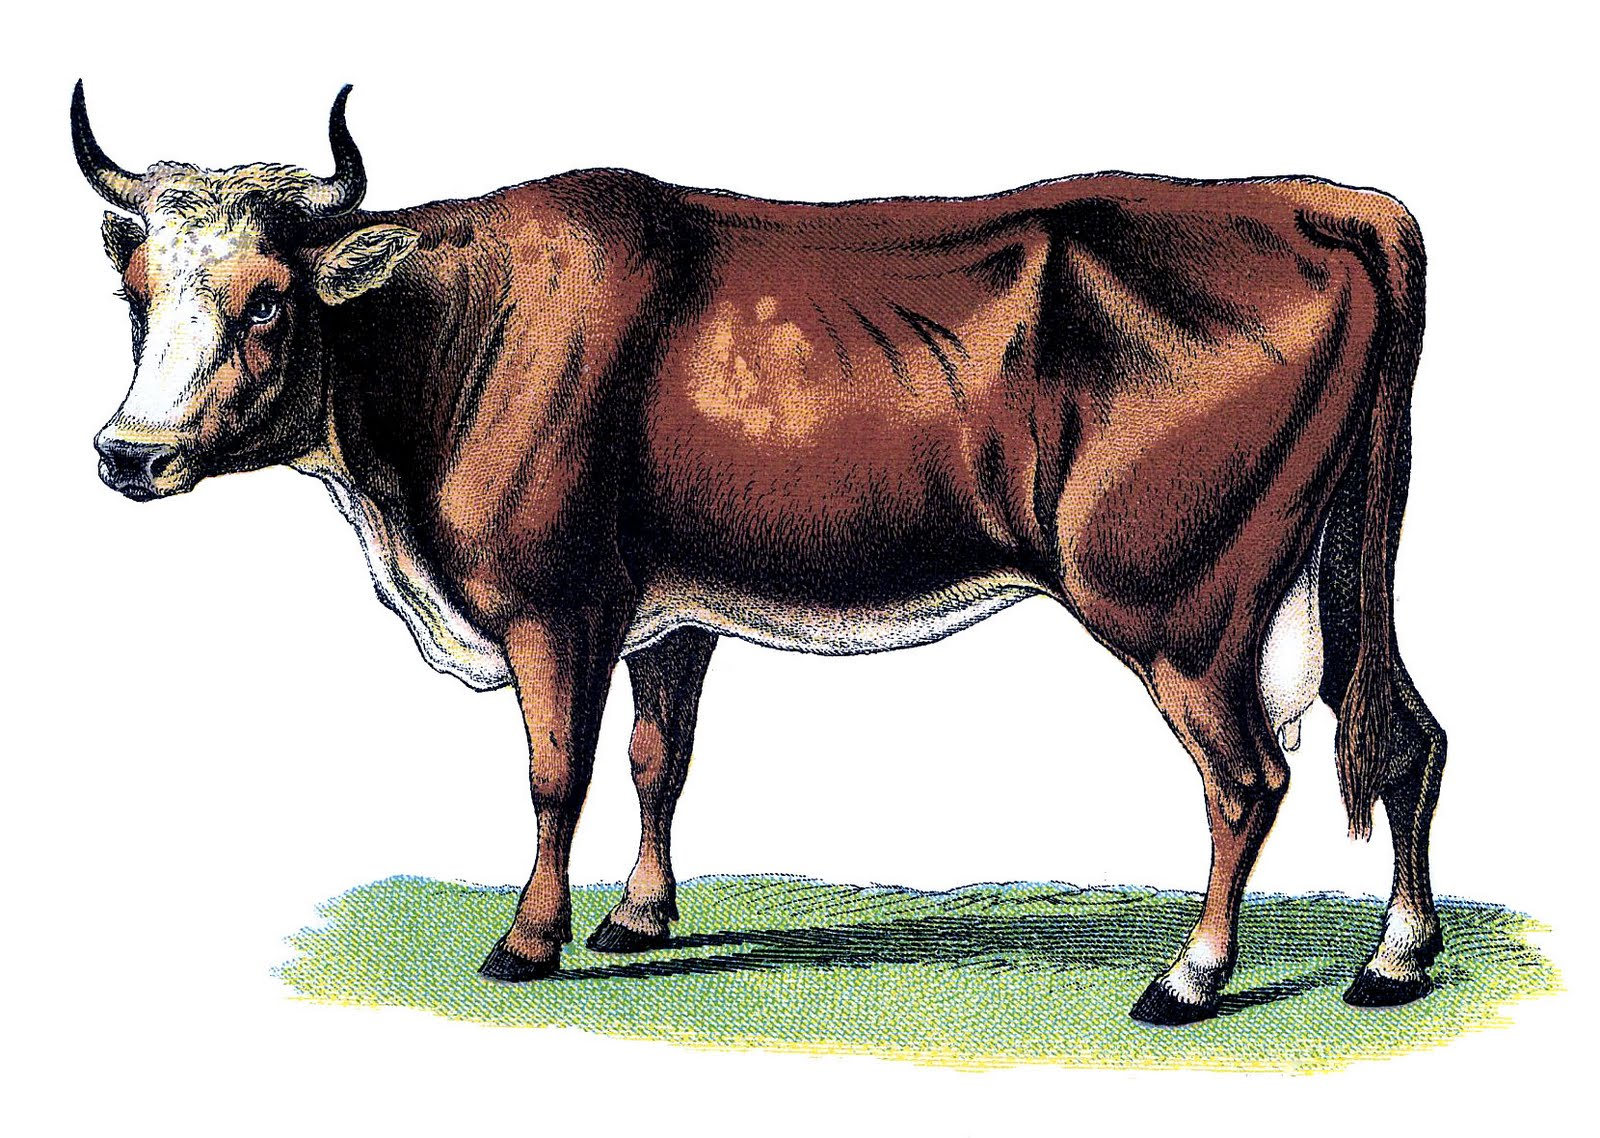 Drawing of an Ox, representing the Wisdom of Crowds